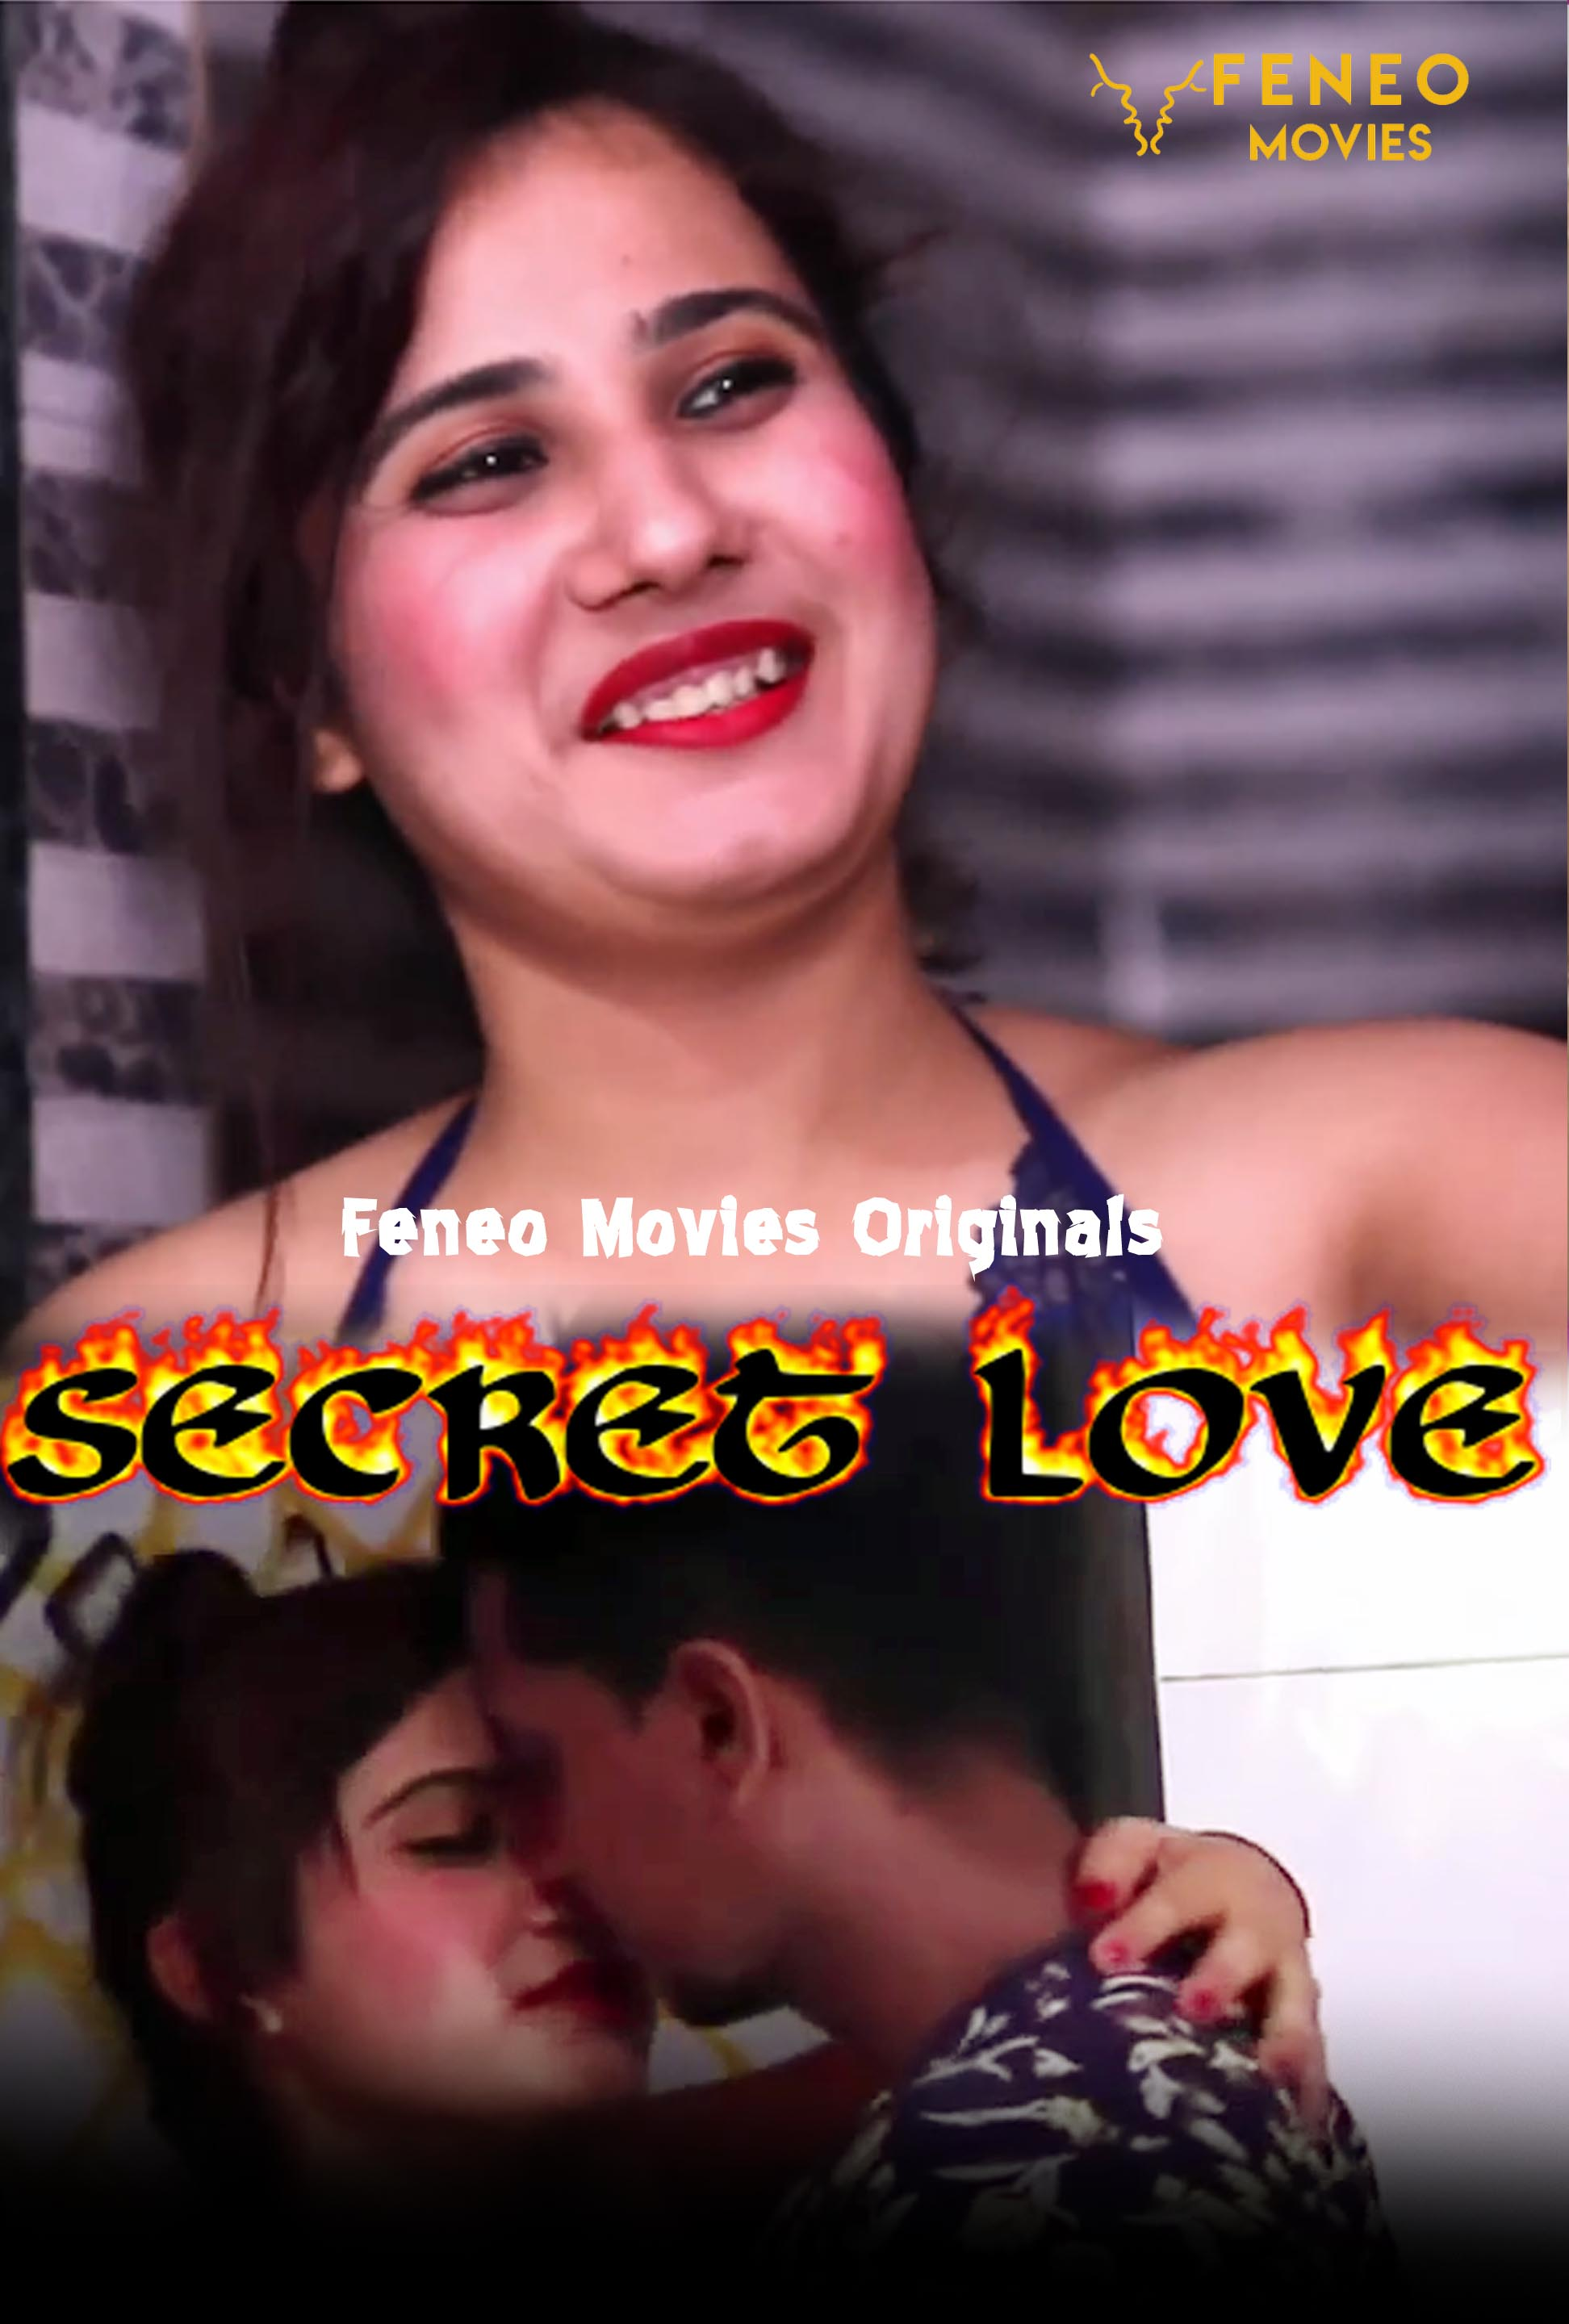 Secret Love 2020 S01E01 Hindi Feneomovies Original Web Series 720p HDRip 200MB Download